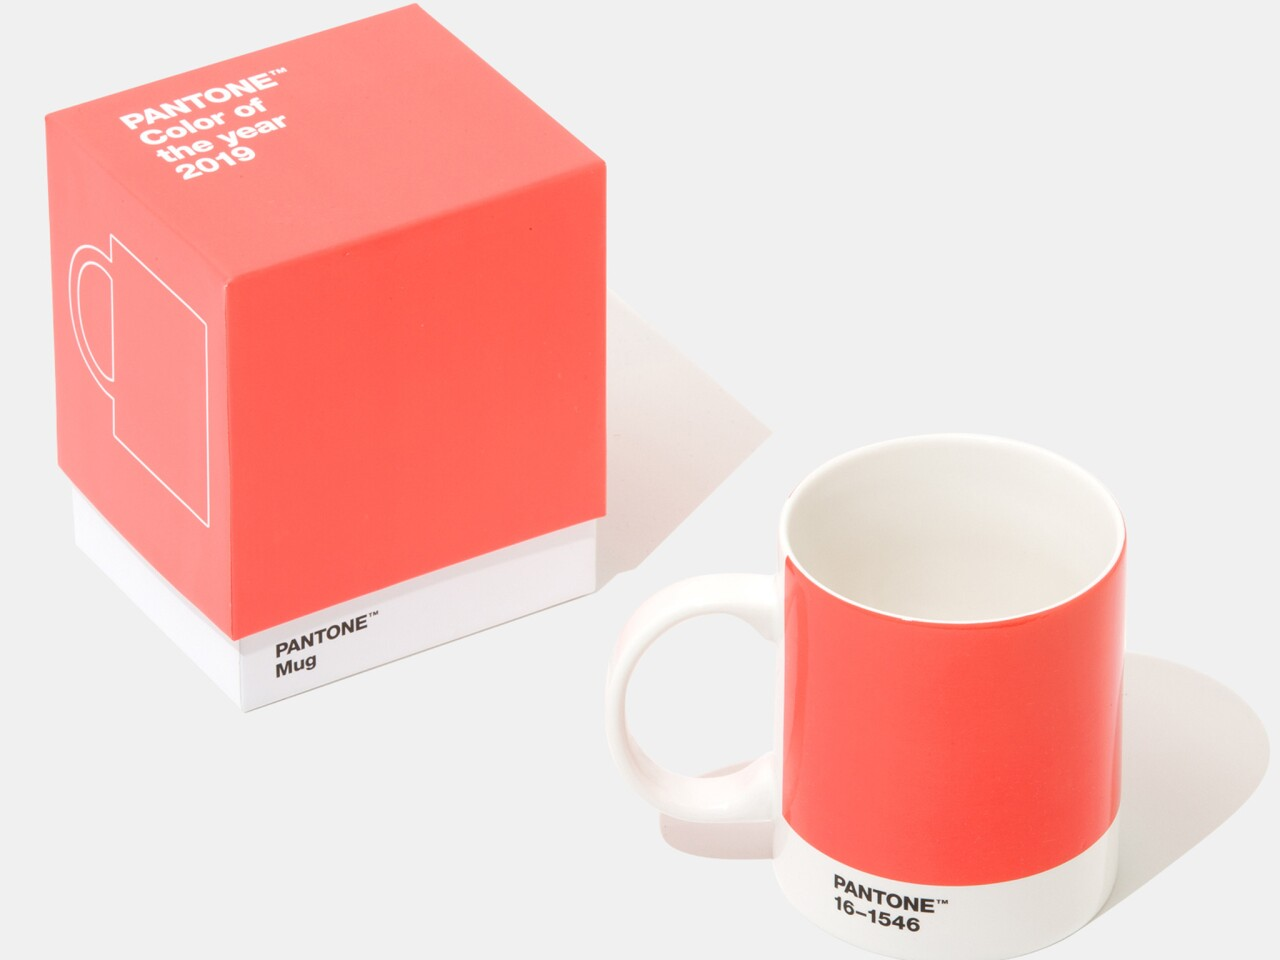 """Pantone's Color of the Year for 2019 is Living Coral which """"emits the desired, familiar, and energizing aspects of color found in nature."""""""